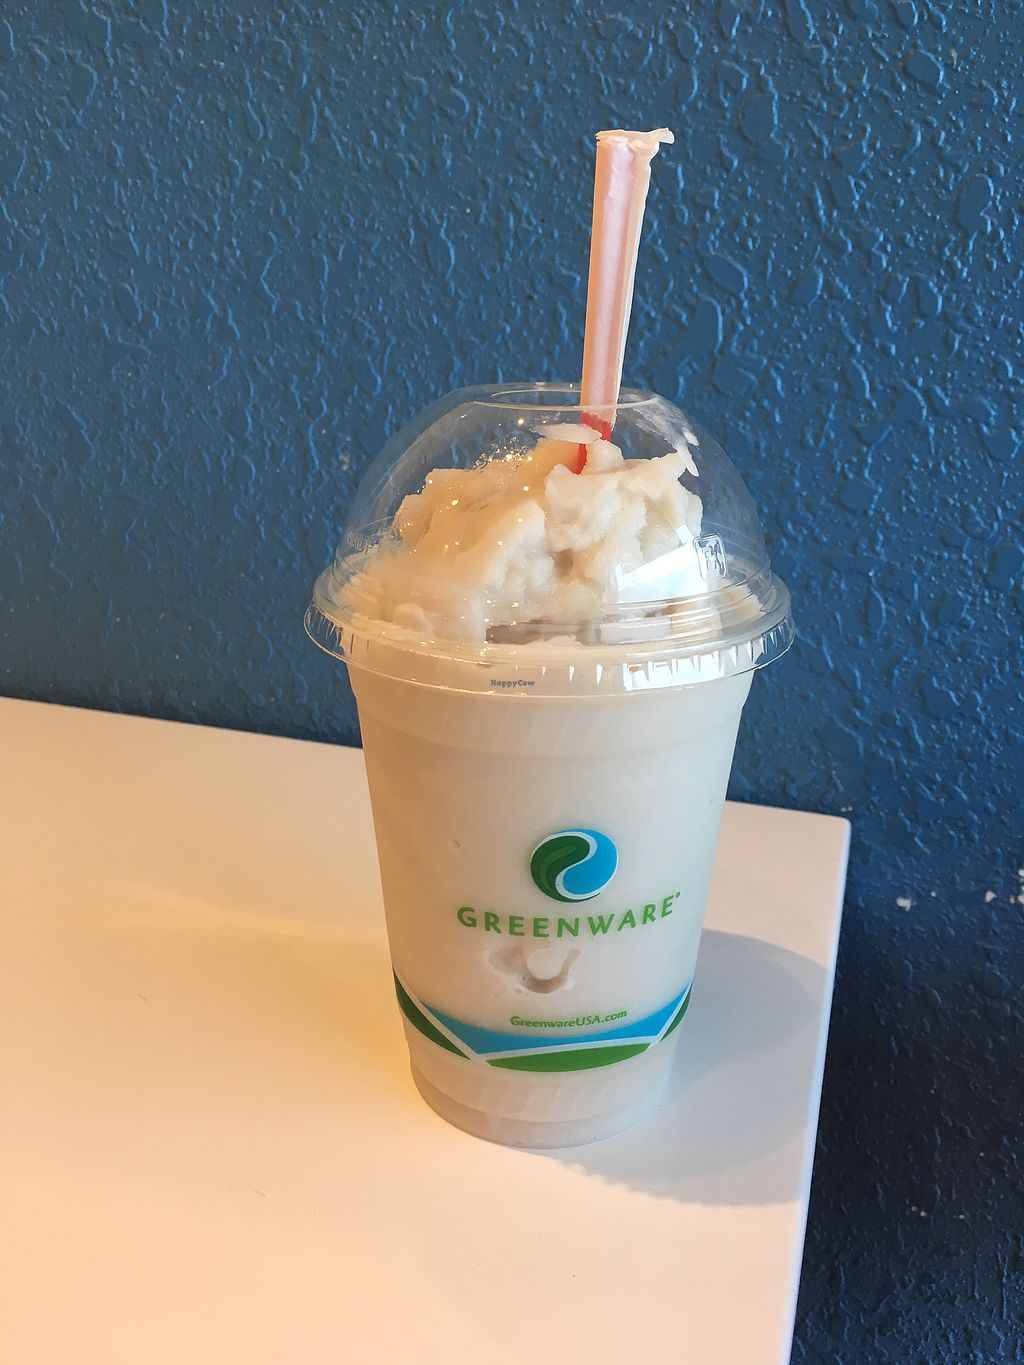 """Photo of Happiness Cafe  by <a href=""""/members/profile/Maganda"""">Maganda</a> <br/>Yum Taro Smoothie  <br/> October 7, 2017  - <a href='/contact/abuse/image/33481/312842'>Report</a>"""